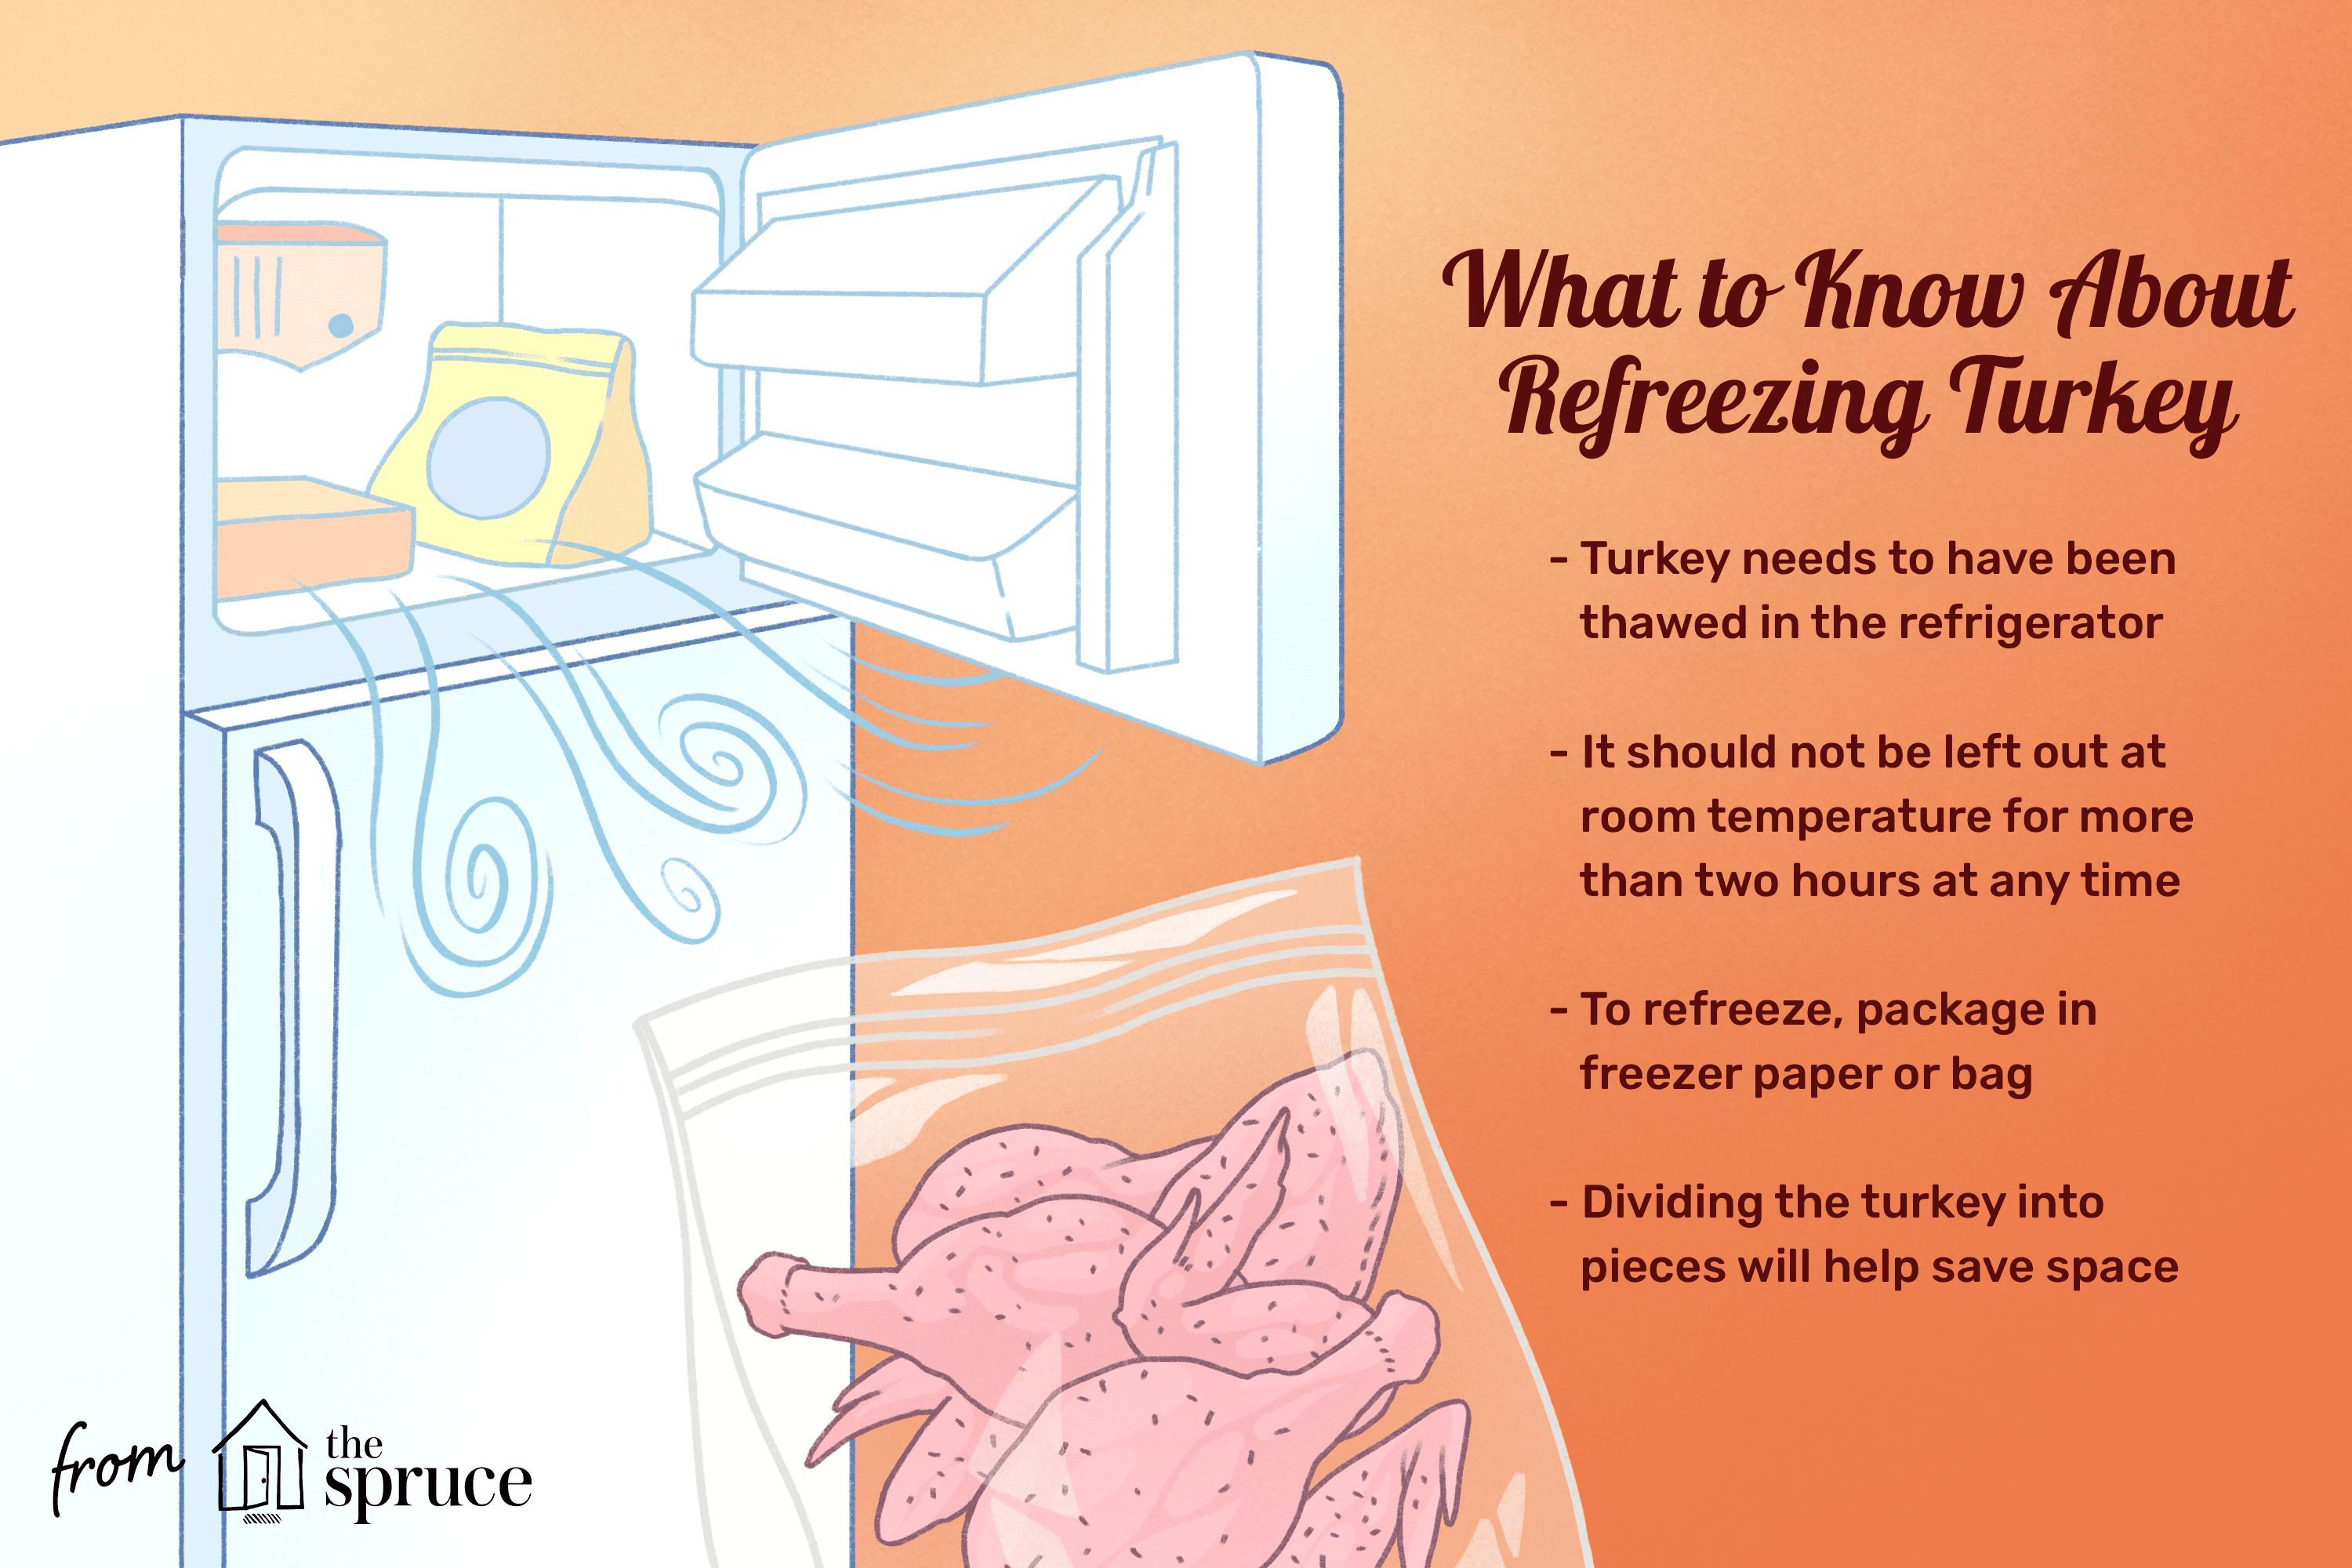 How To Safely Refreeze A Turkey